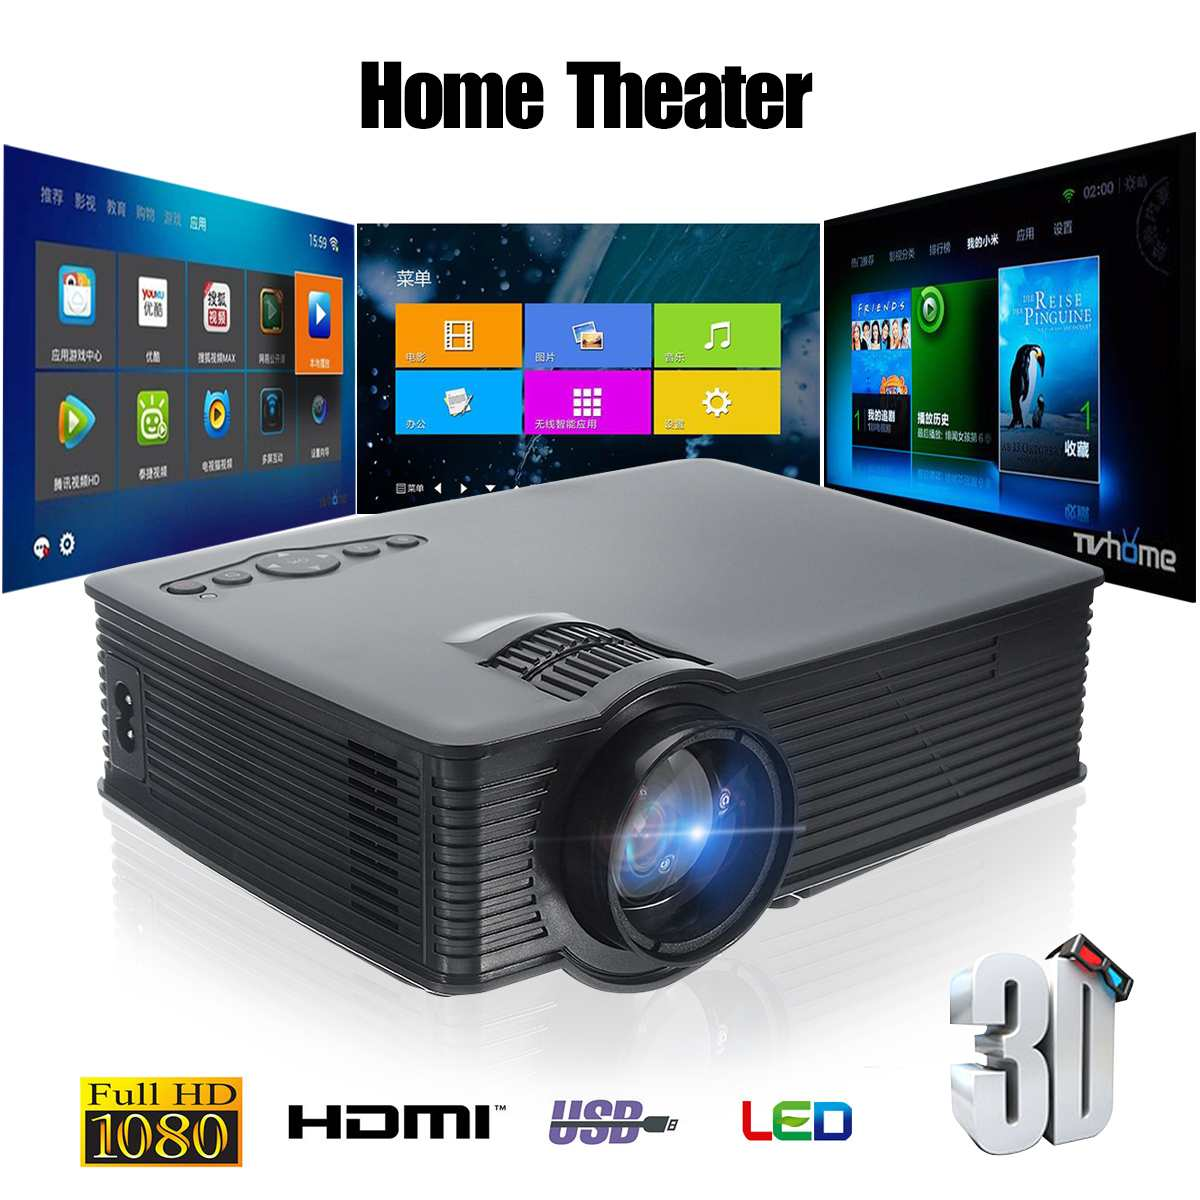 3000 Lumens Hd Home Theater Multimedia Lcd Led Projector: Portable 3000 Lumens HD 1080P 3D Multimedia Projector LED